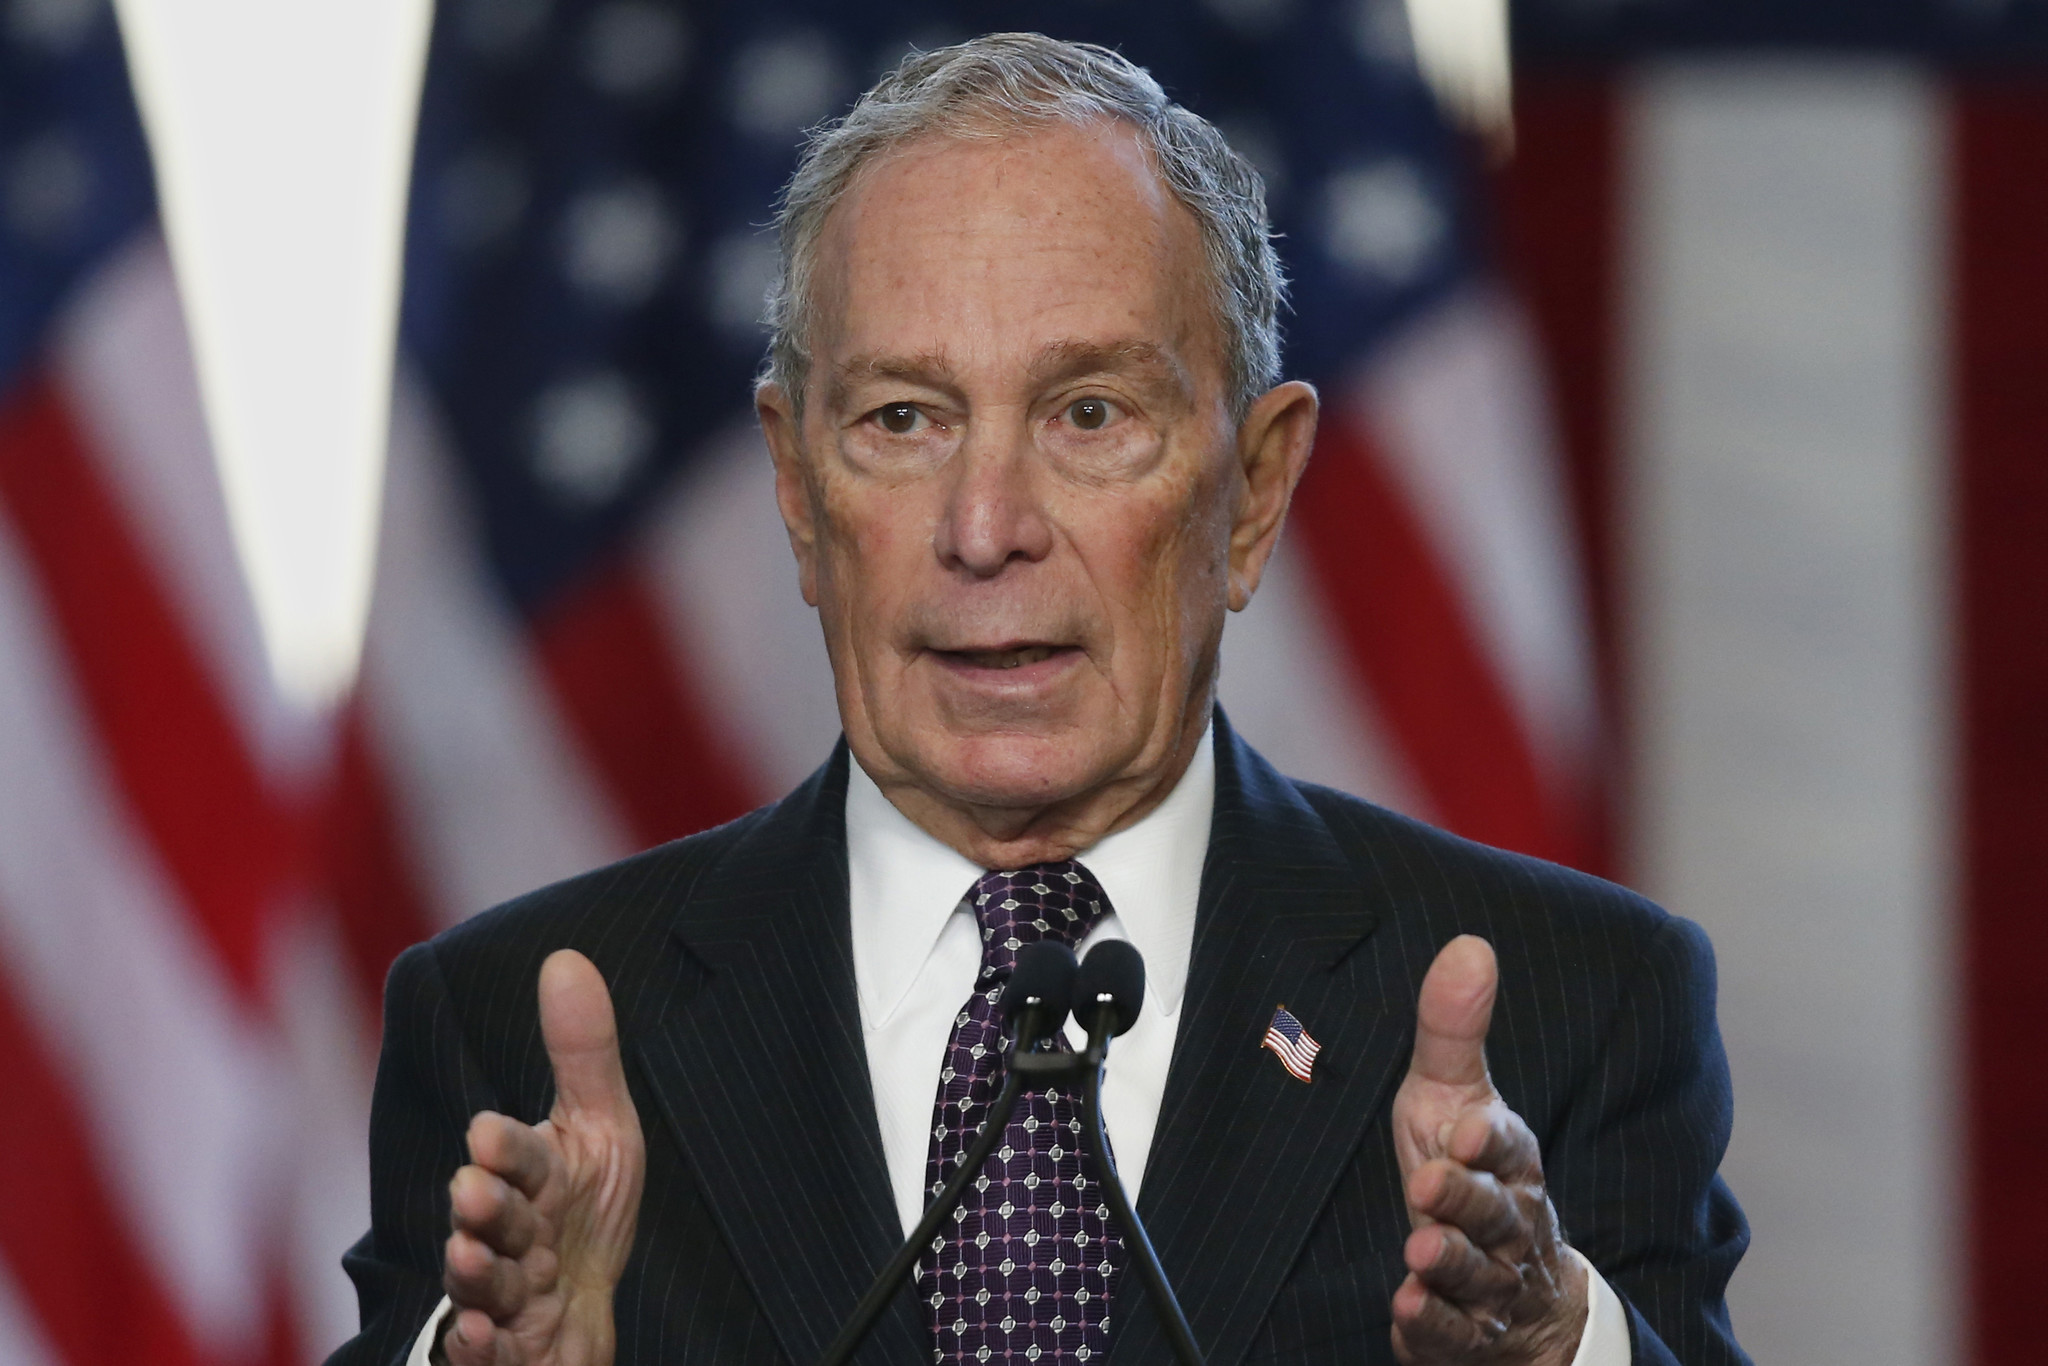 Michael Bloomberg sends campaign letter to 2.5 million voters in Super Tuesday primary states